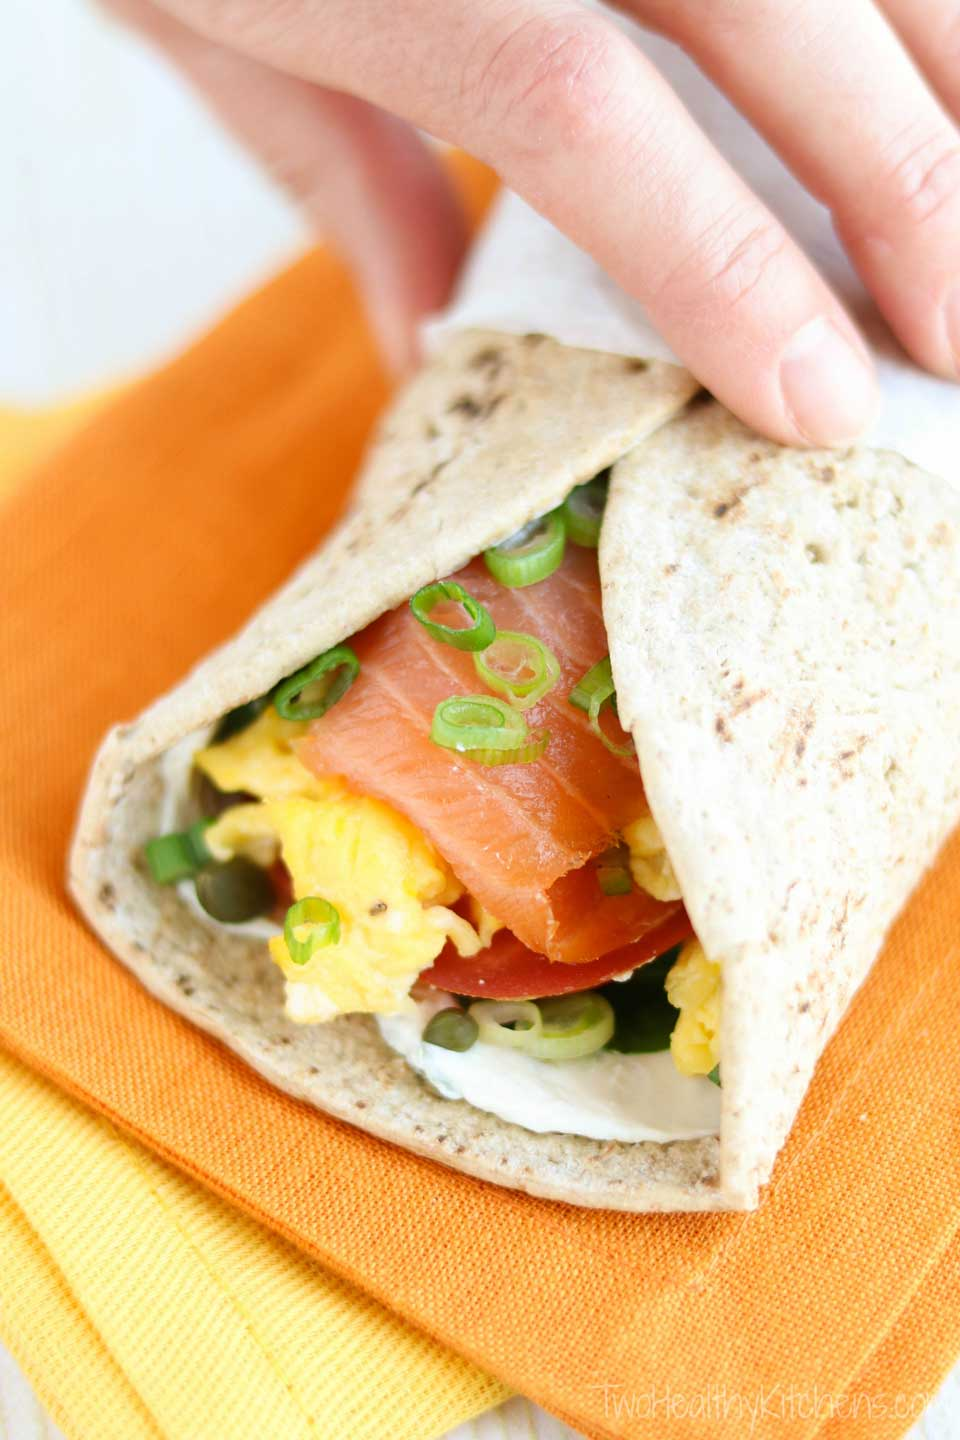 Ready in just minutes! Warm, fluffy eggs with luxurious smoked salmon, velvety cream cheese, and bright, fresh veggies – deliciously layered in this super-fast Smoked Salmon Breakfast Wrap that'll have you out the door in no time! Full of protein, fiber and veggies, it's absolutely delicious and also nutritious enough to keep you powered up all morning long! With luxurious smoked salmon, this easy breakfast wrap recipe is an upscale twist on typical egg wraps! {ad} | www.TwoHealthyKitchens.com